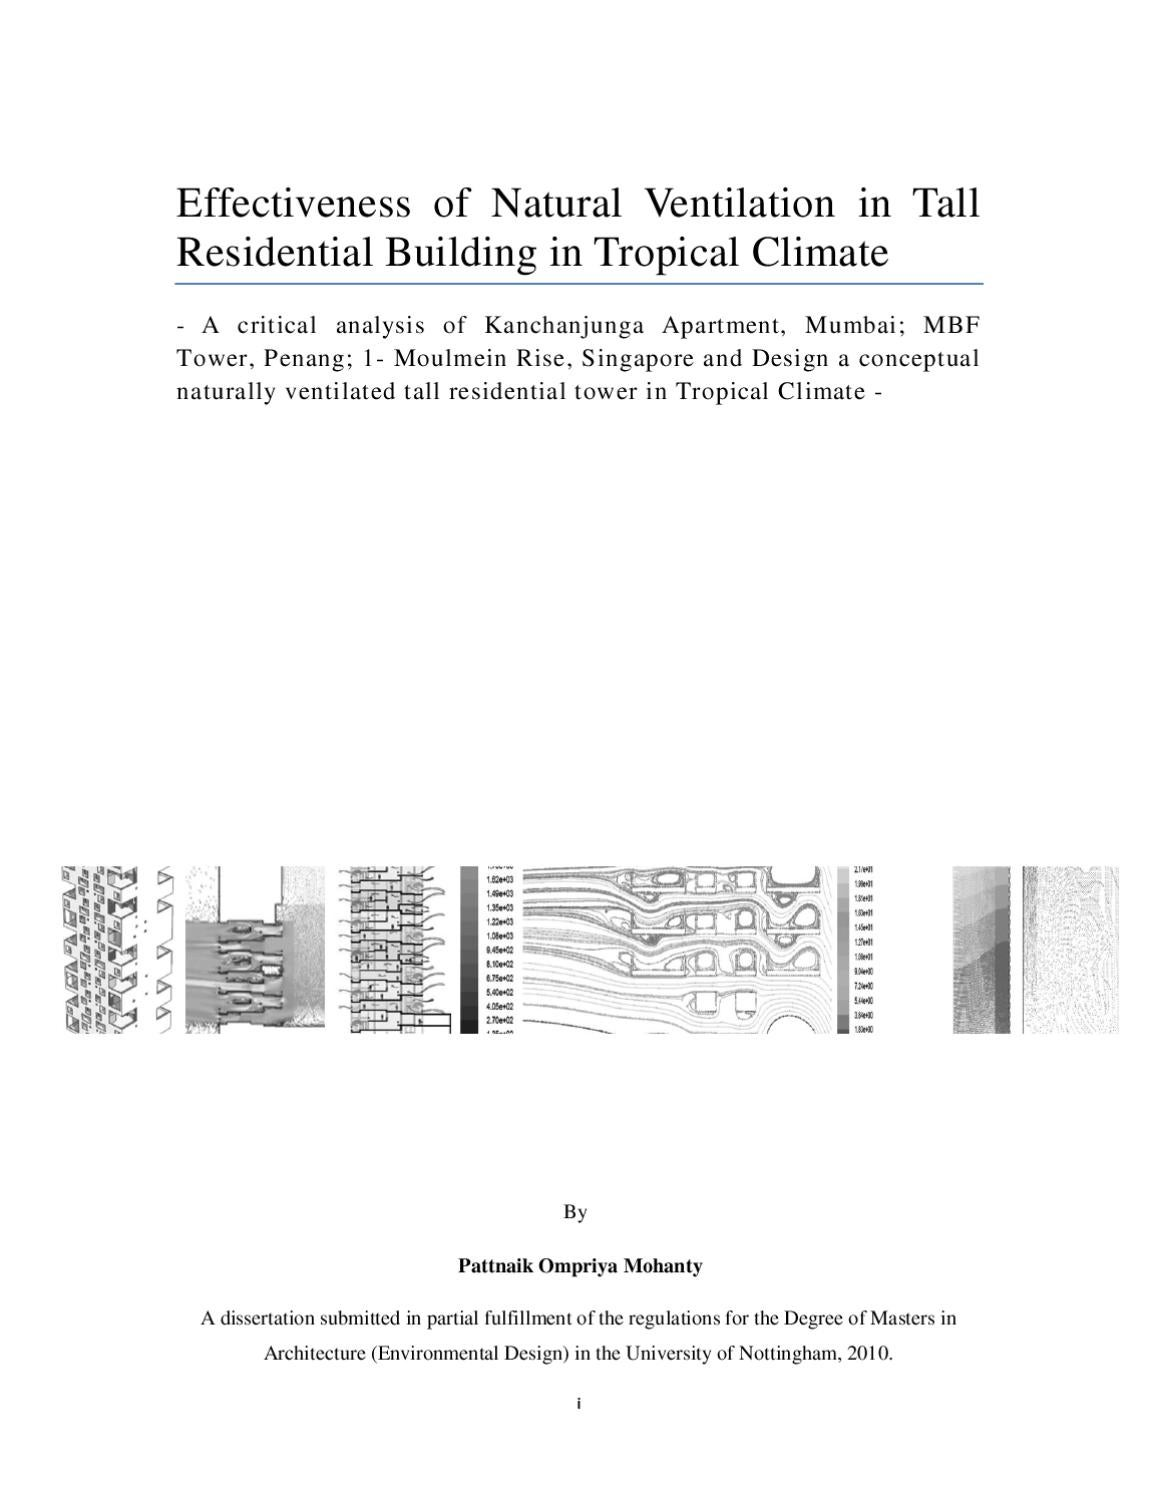 ed masters dissertation by pattnaik mohanty issuu rh issuu com cibse applications manual am10 natural ventilation